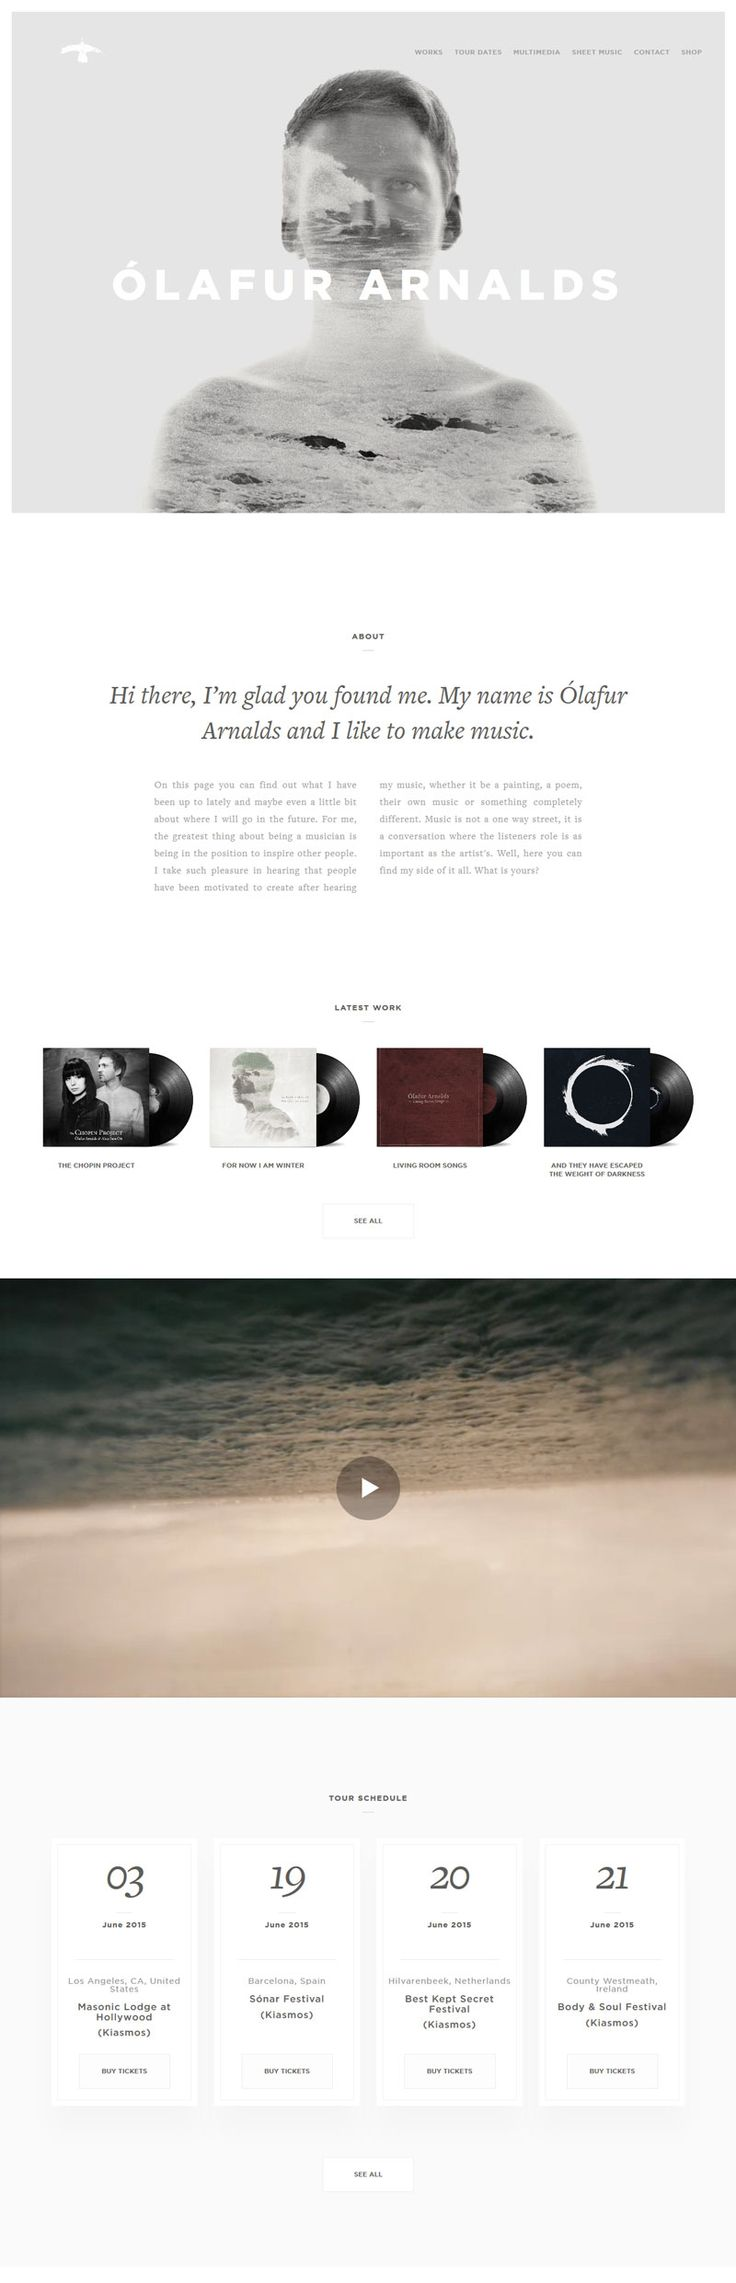 Olafur Arnalds - Clean and Minimal Design